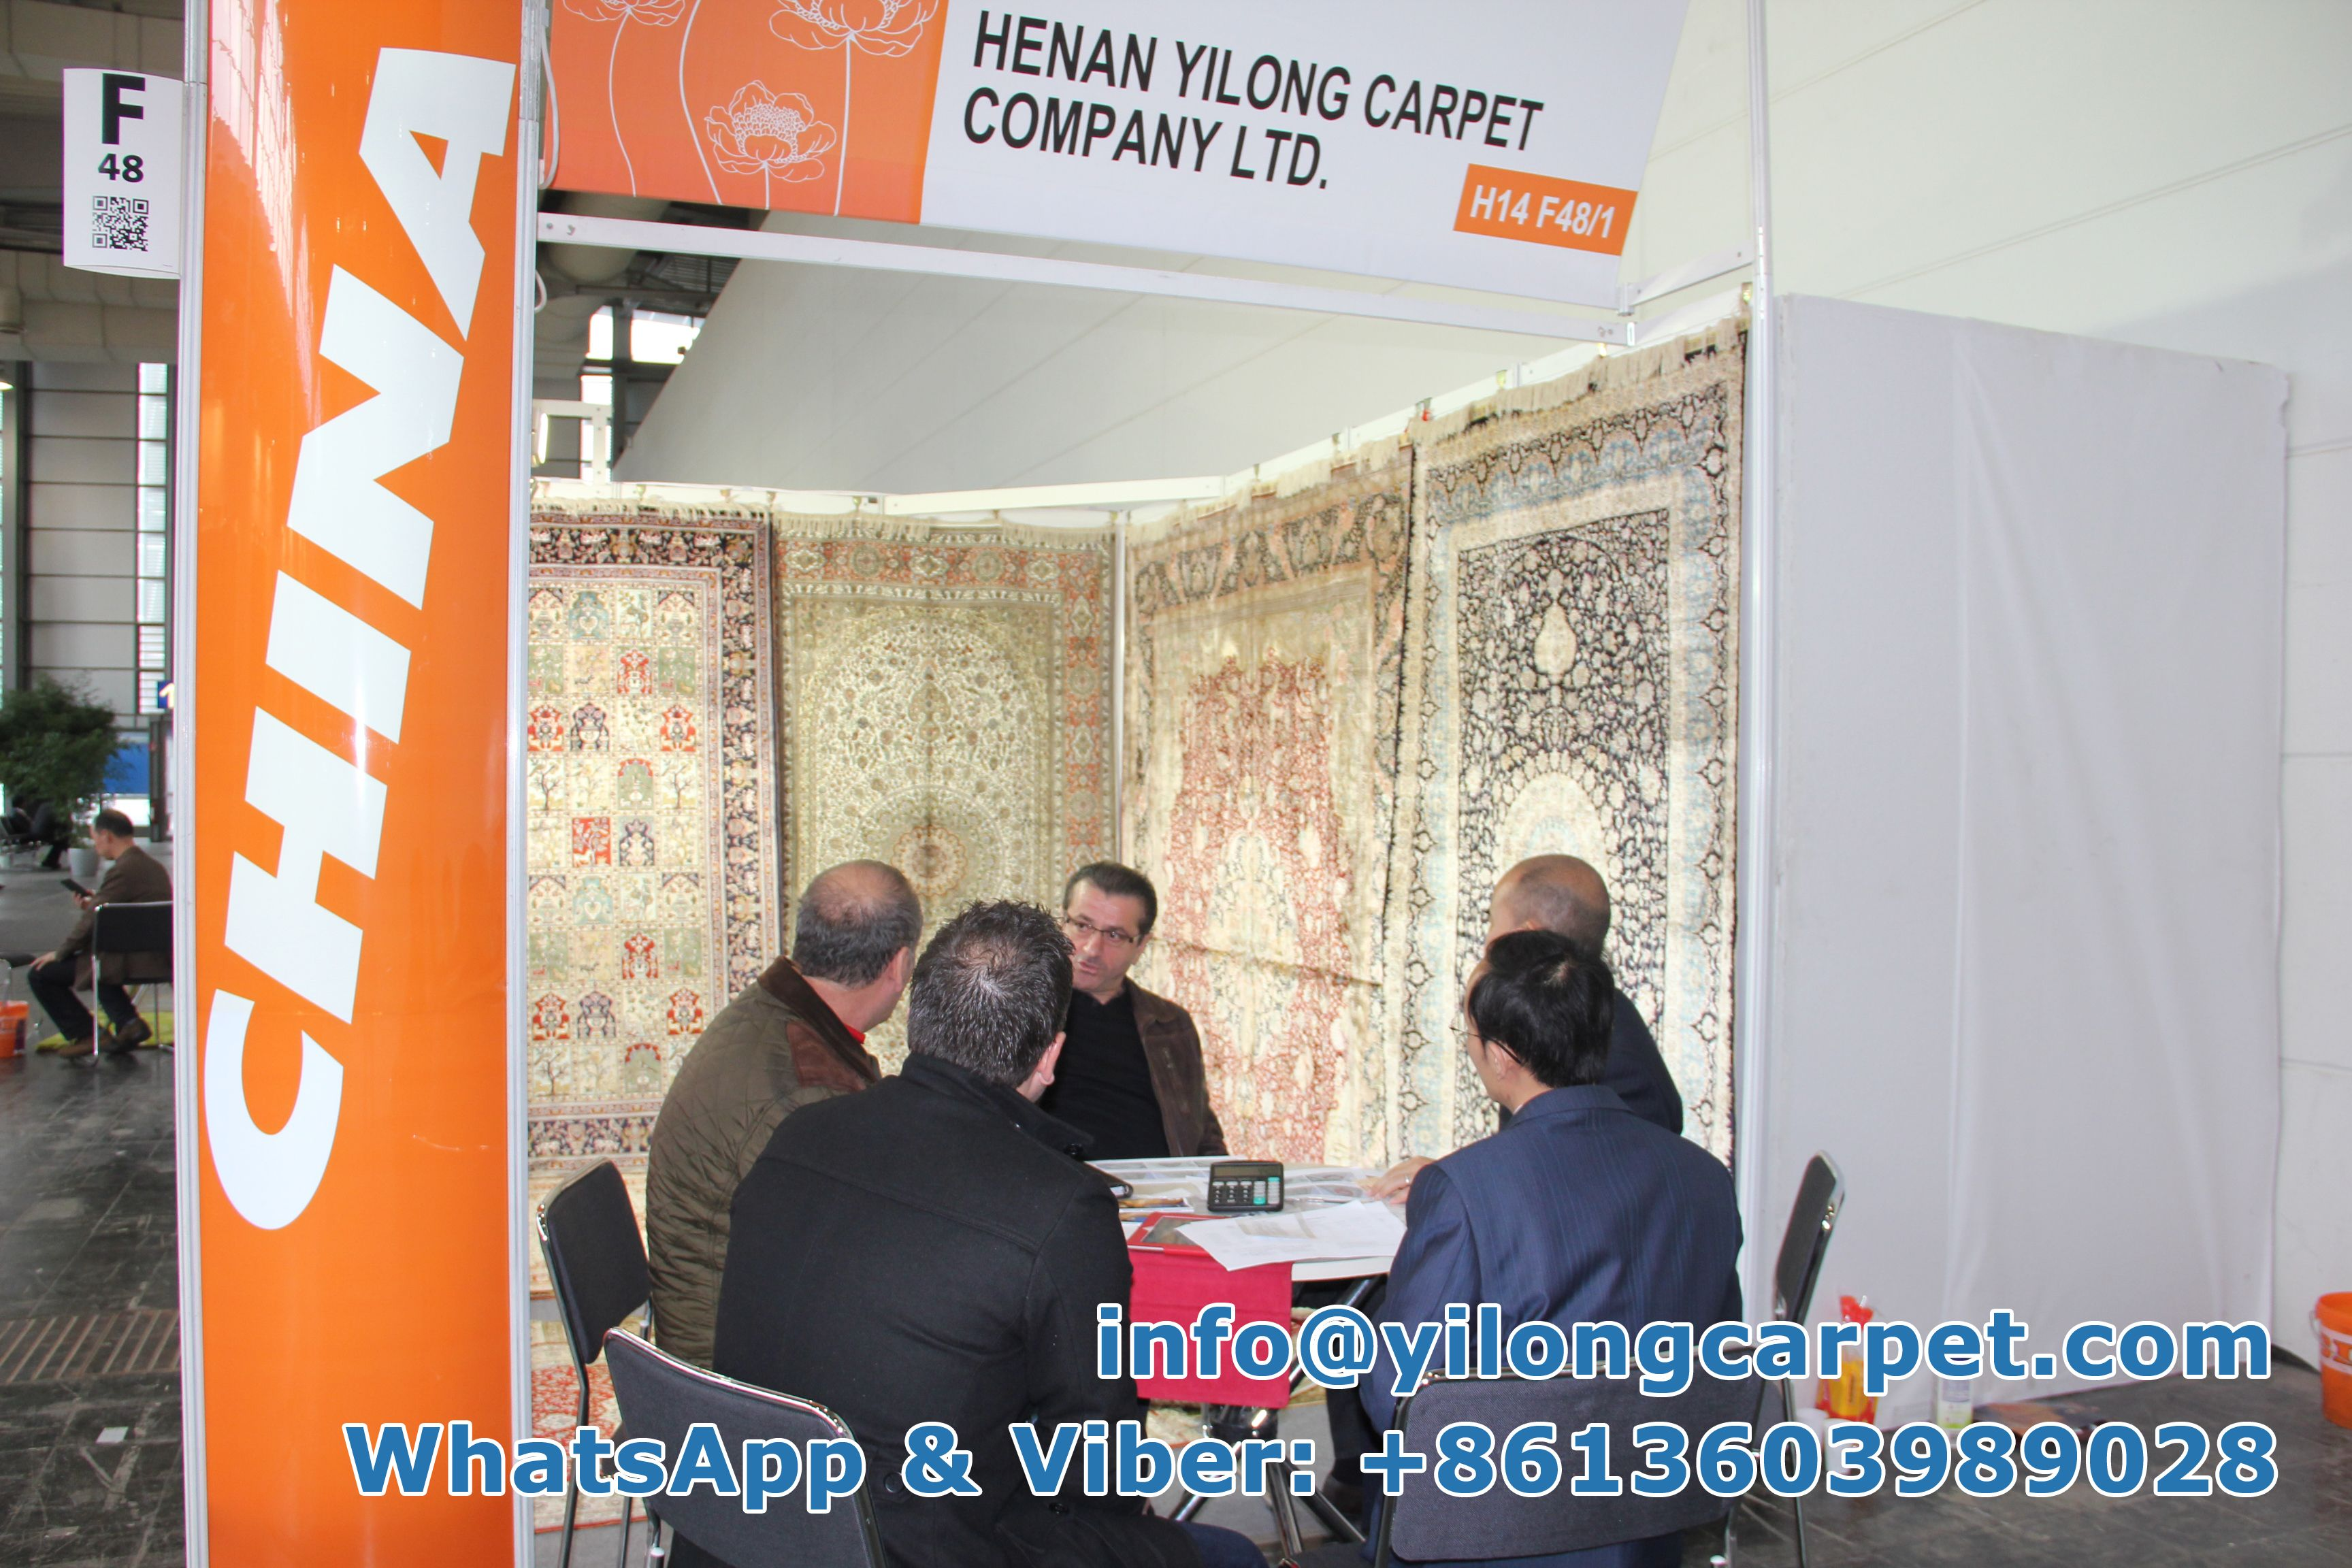 In the year of 2014, Three customers from USA were sitting around the table at our Domotex Booth with Mr. Leevery Han and Mr. Zhang to make a discussion on our products. Yilong Carpet including Persian Rug; Oriental Rug; Turkish Rug; Antique Rug,Anbusson, Bijar Rug, Chinese Rug, Eilan Rug, Hand Knotted Rug, Handmade rug, Isfahan Rug, Kashan Rug, Kashmir Rug, Kerman Rug, Nain Rug, Qum Rug, Sarouk Rug, Silk Rug, Tabriz Rug, Vintage Rug